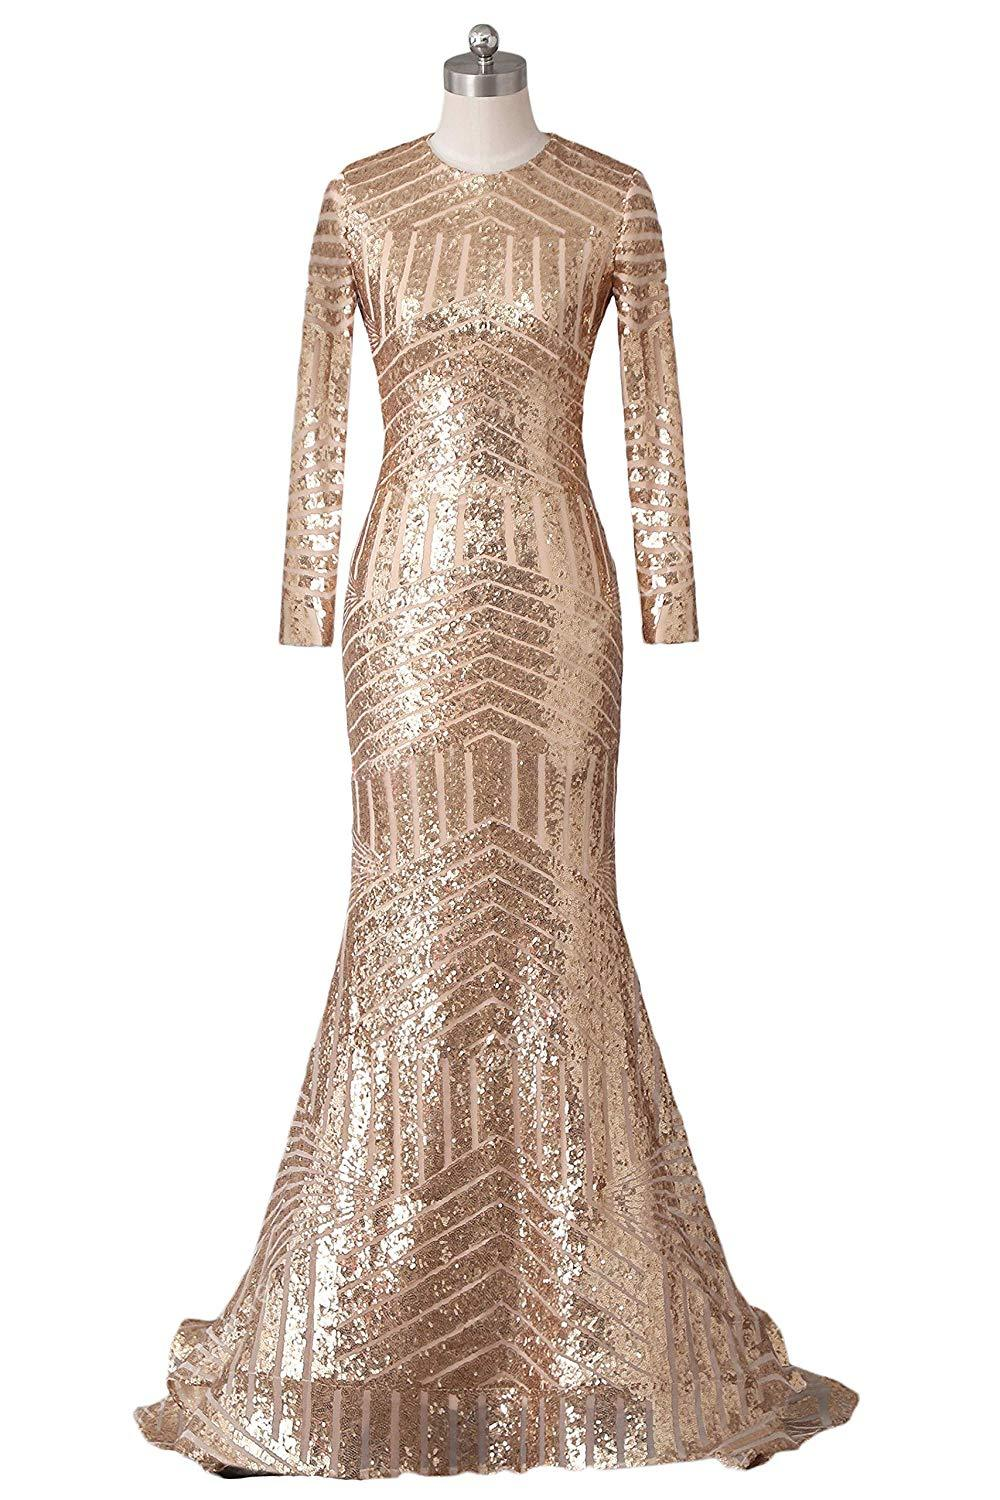 2019 Mermaid Long Sequins Formal Evening Dress Long Sleeves High Neck Prom Dress